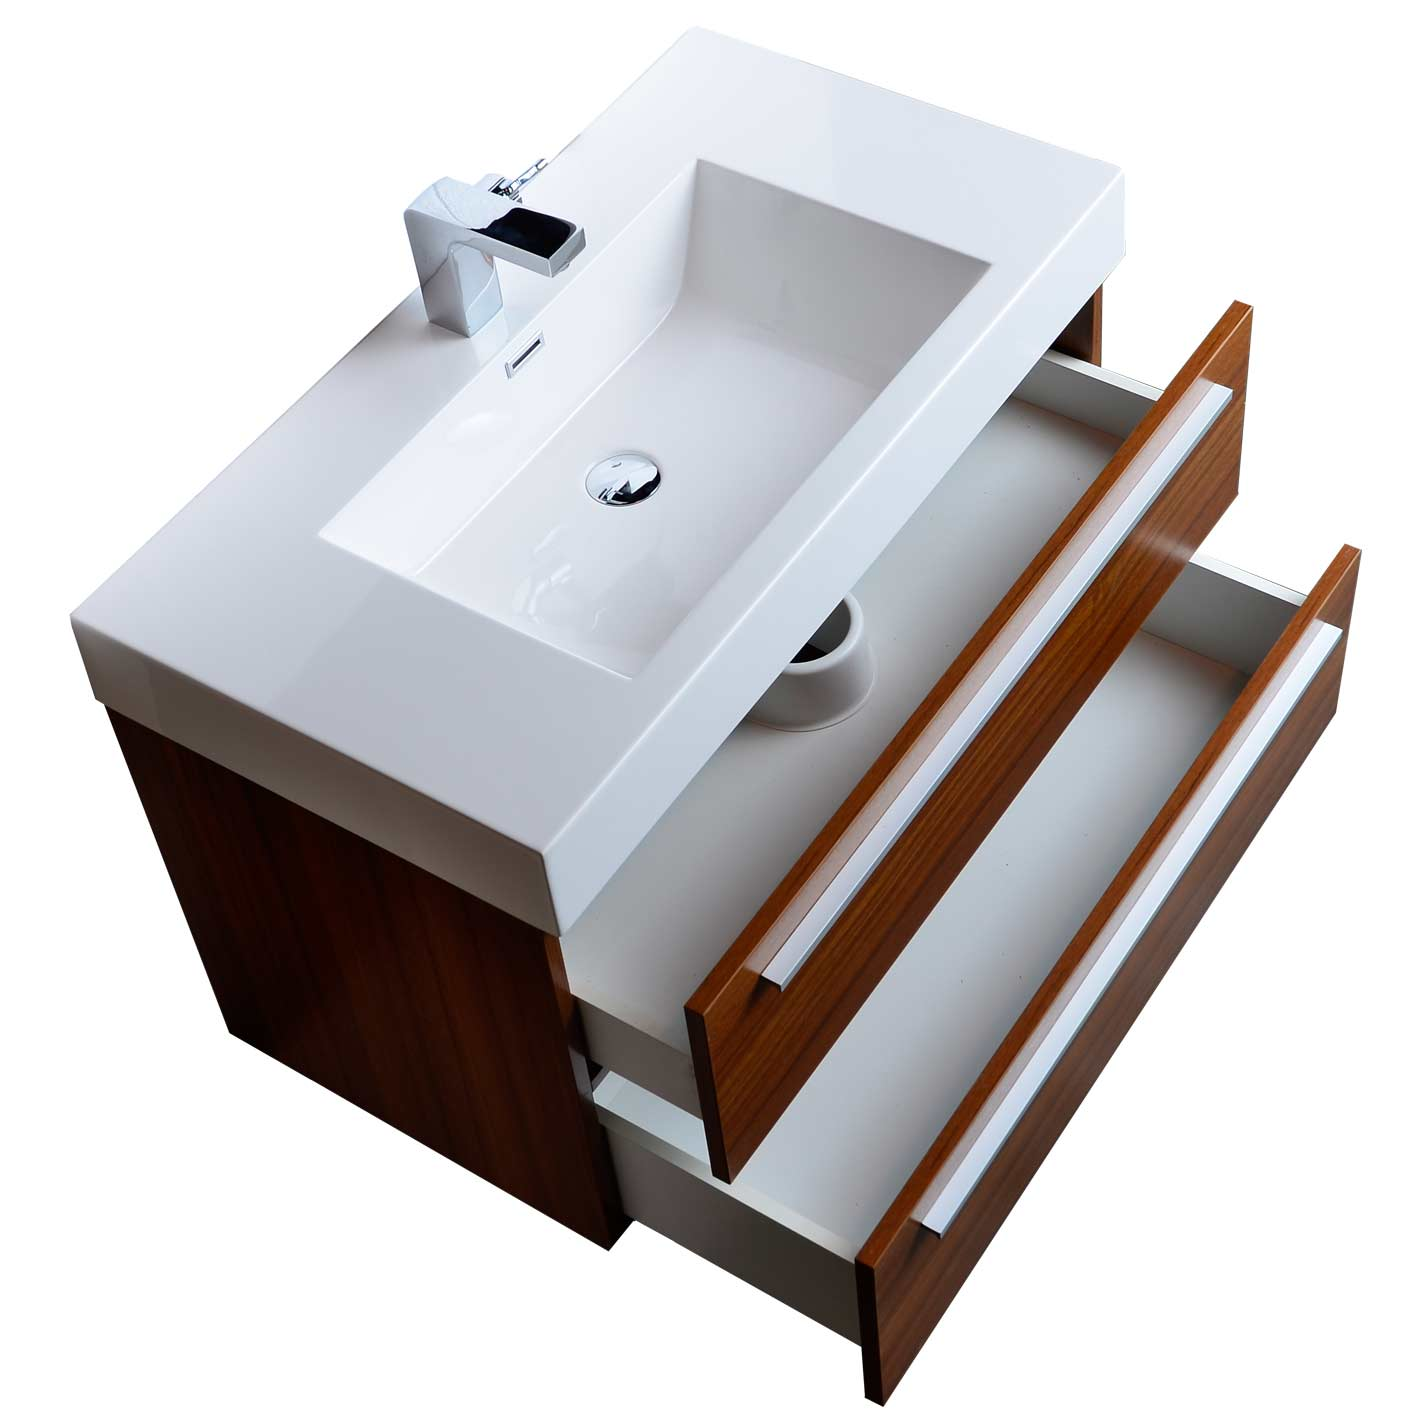 WallMount Contemporary Bathroom Vanity Teak TNMTK - Wall mount vanities for bathrooms